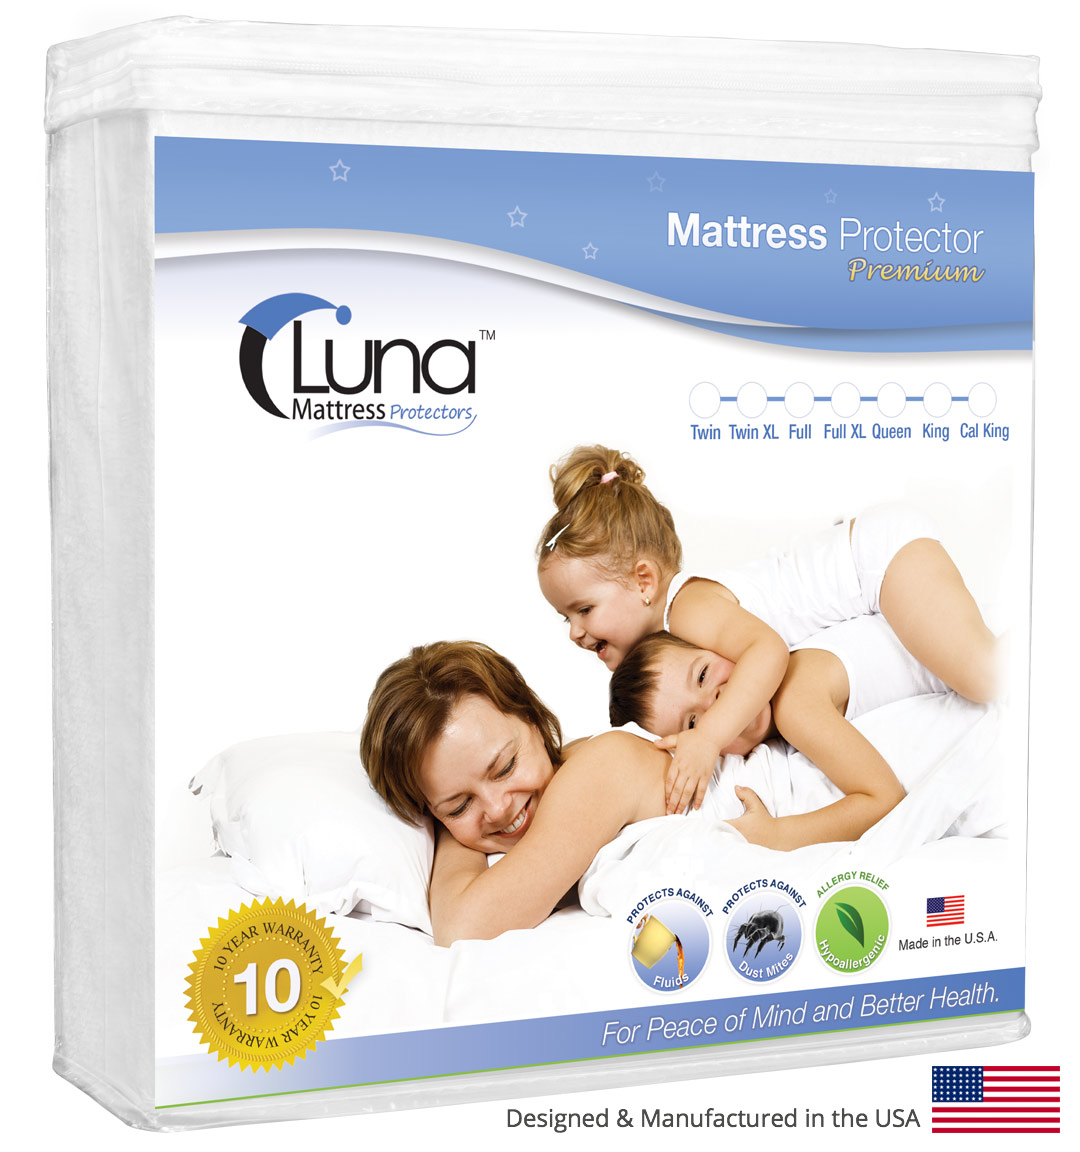 luna premium waterproof mattress protector multiple sizes made in the usa vinyl free walmartcom